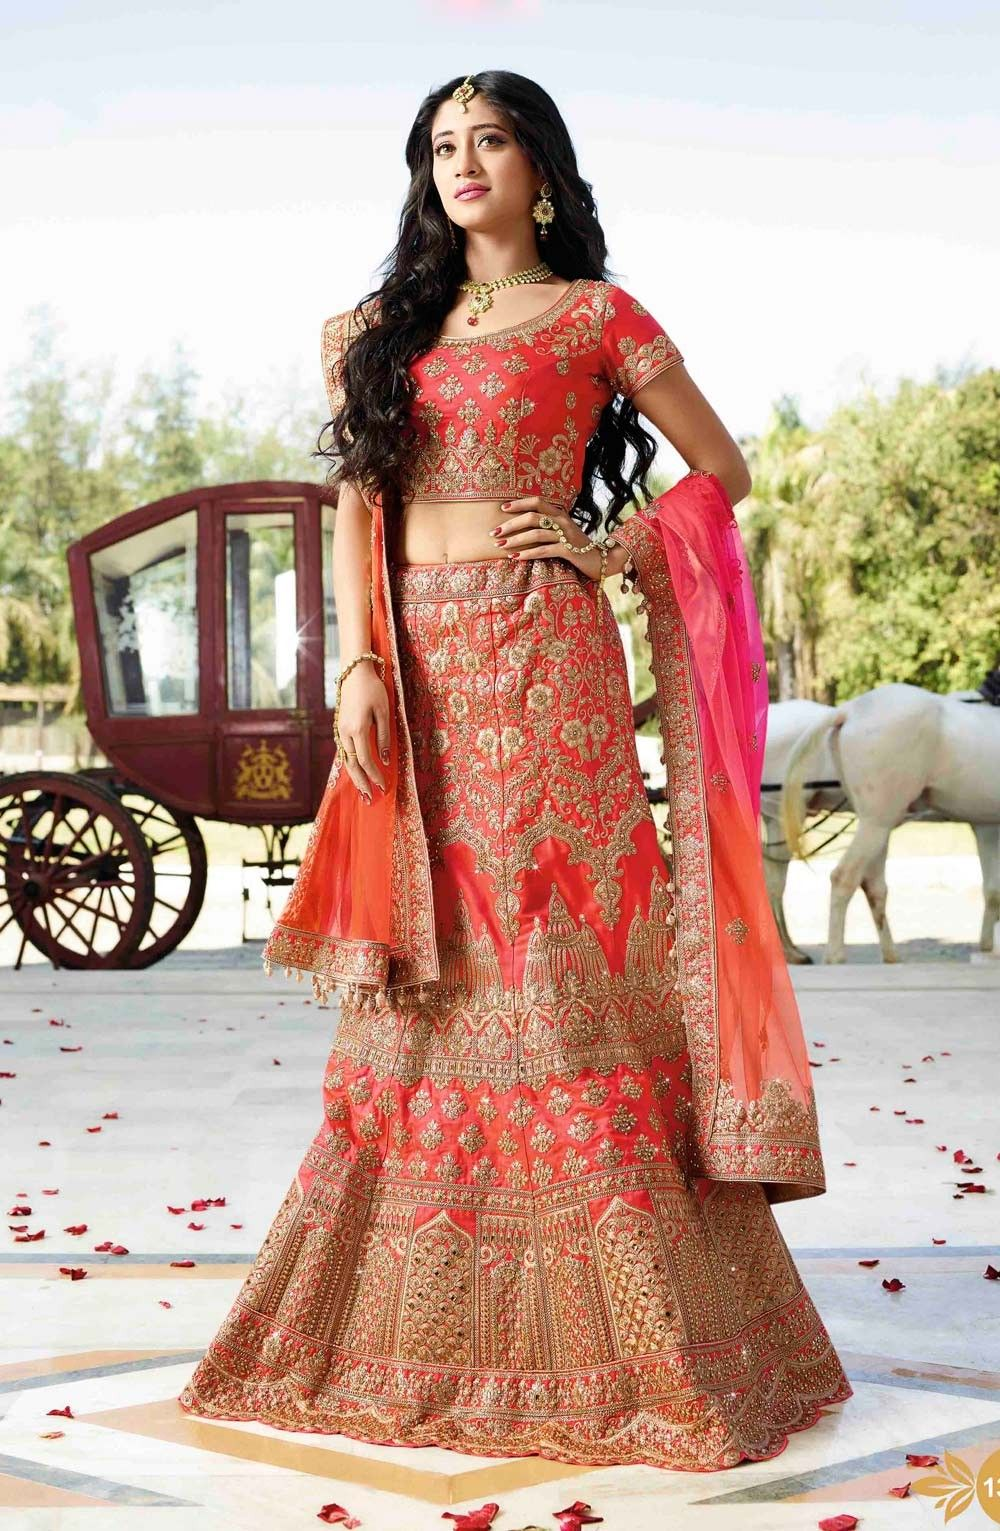 71e1aac8e Rajwadi Bridal Lengha Choli with resham Embroidery on Satin Fabric ...